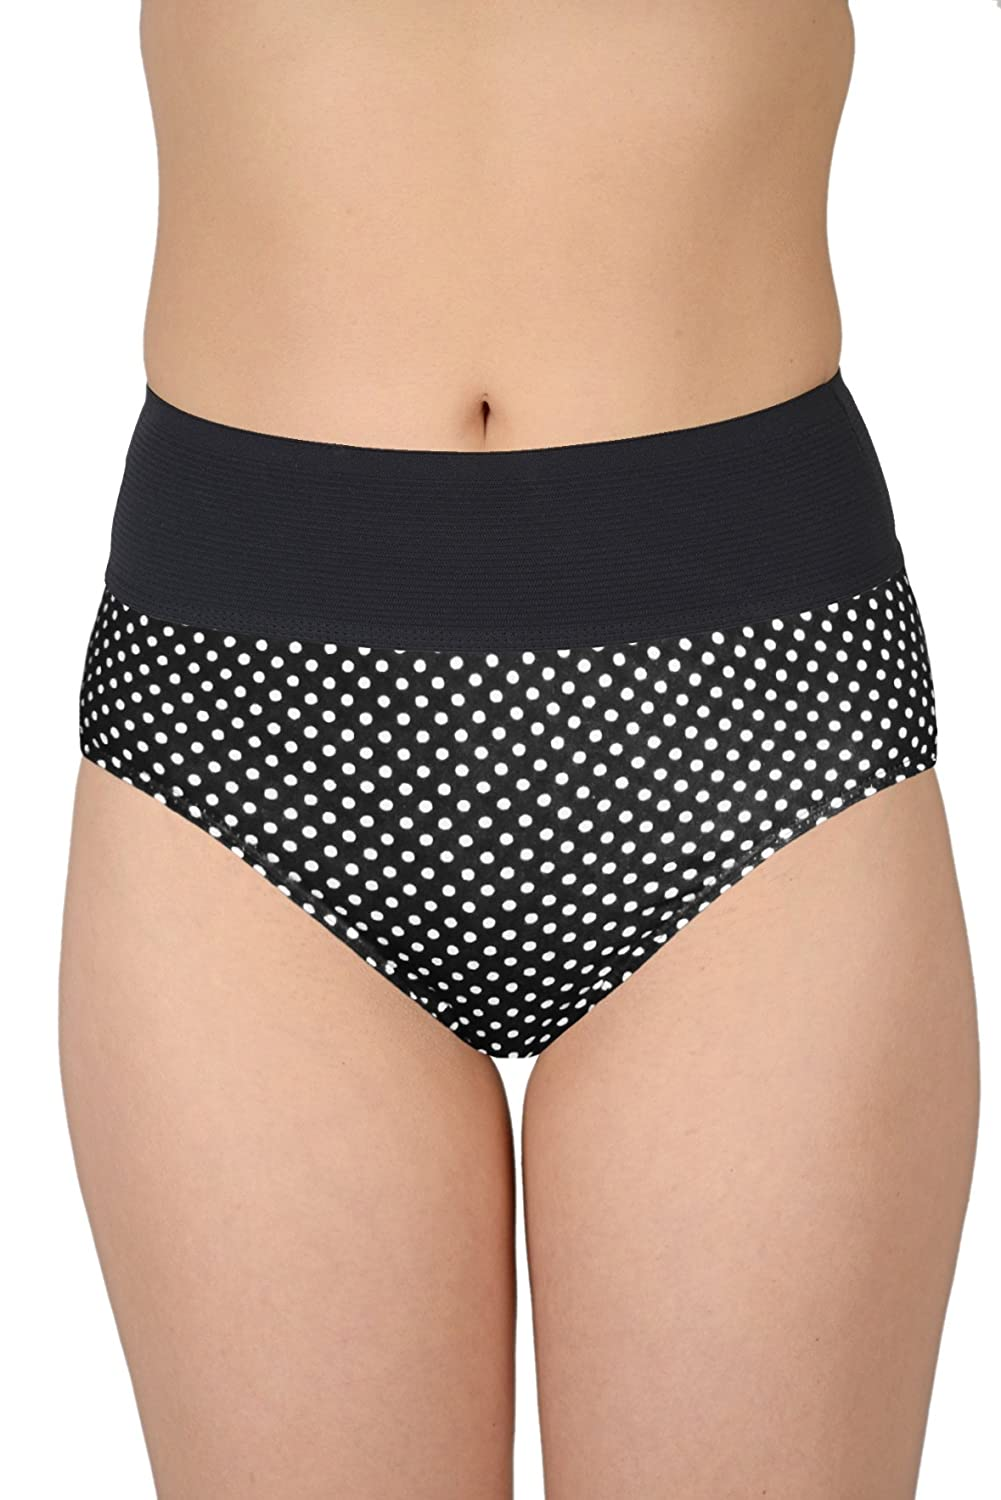 fcb40aa6366d Selfcare Women's Cotton Tummy Controller Hipster Panties: Amazon.in:  Clothing & Accessories